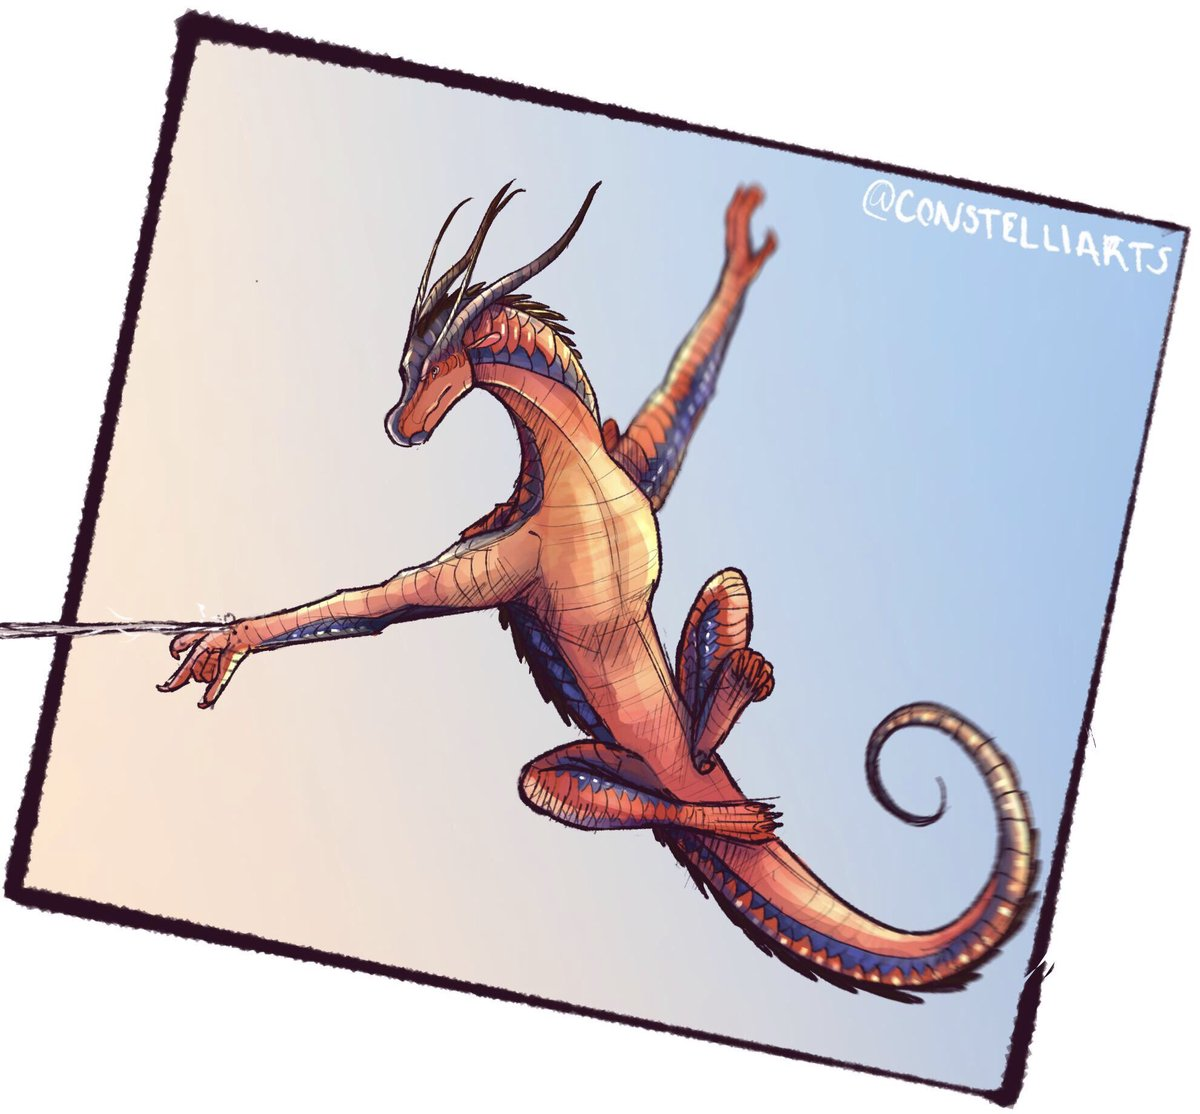 Connie On Twitter Bruh Imagine If Silkwings Used Their Silk Like Spider Man Wingsoffire Silkwing Spiderman